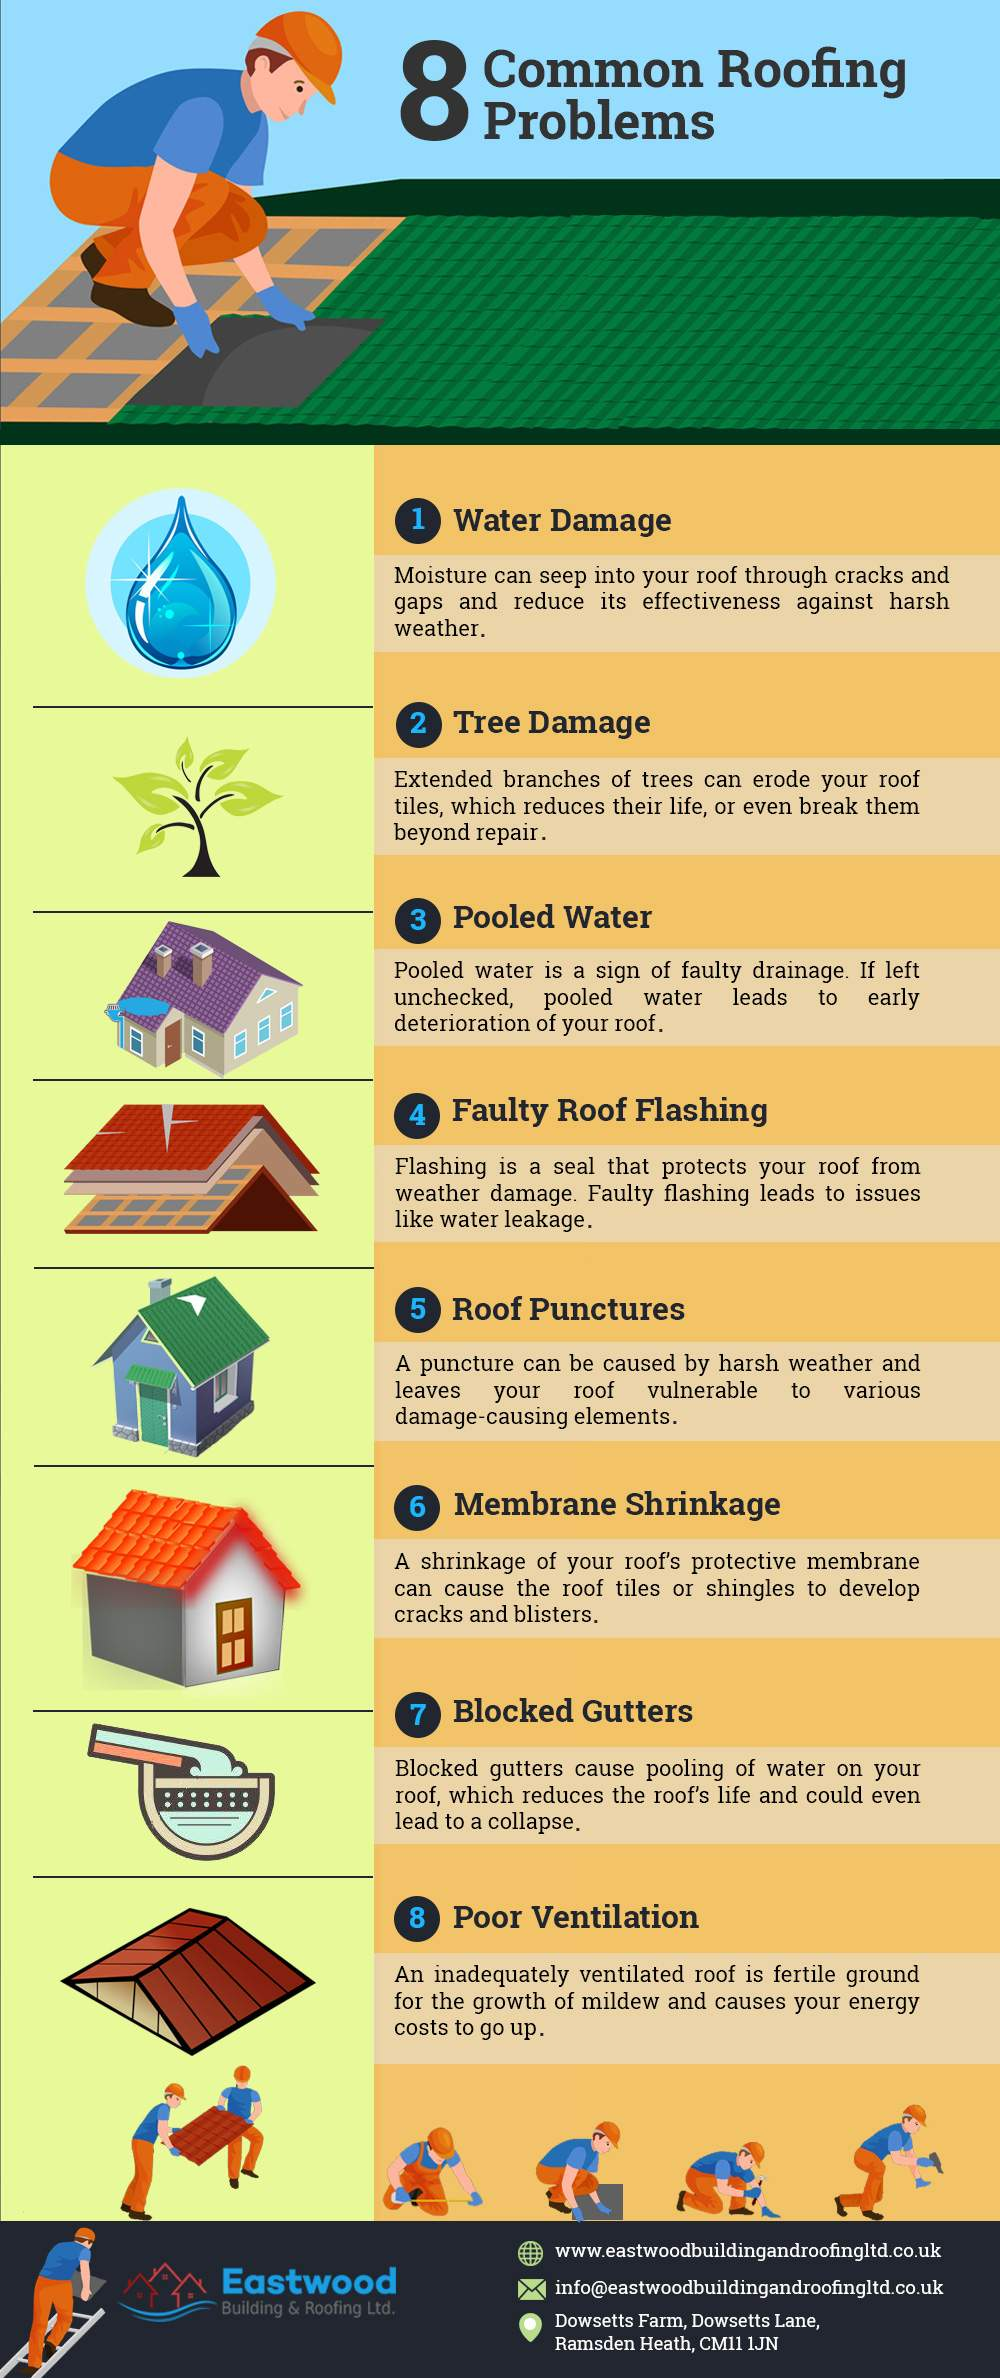 8-Common-Roofing-Problems.jpg